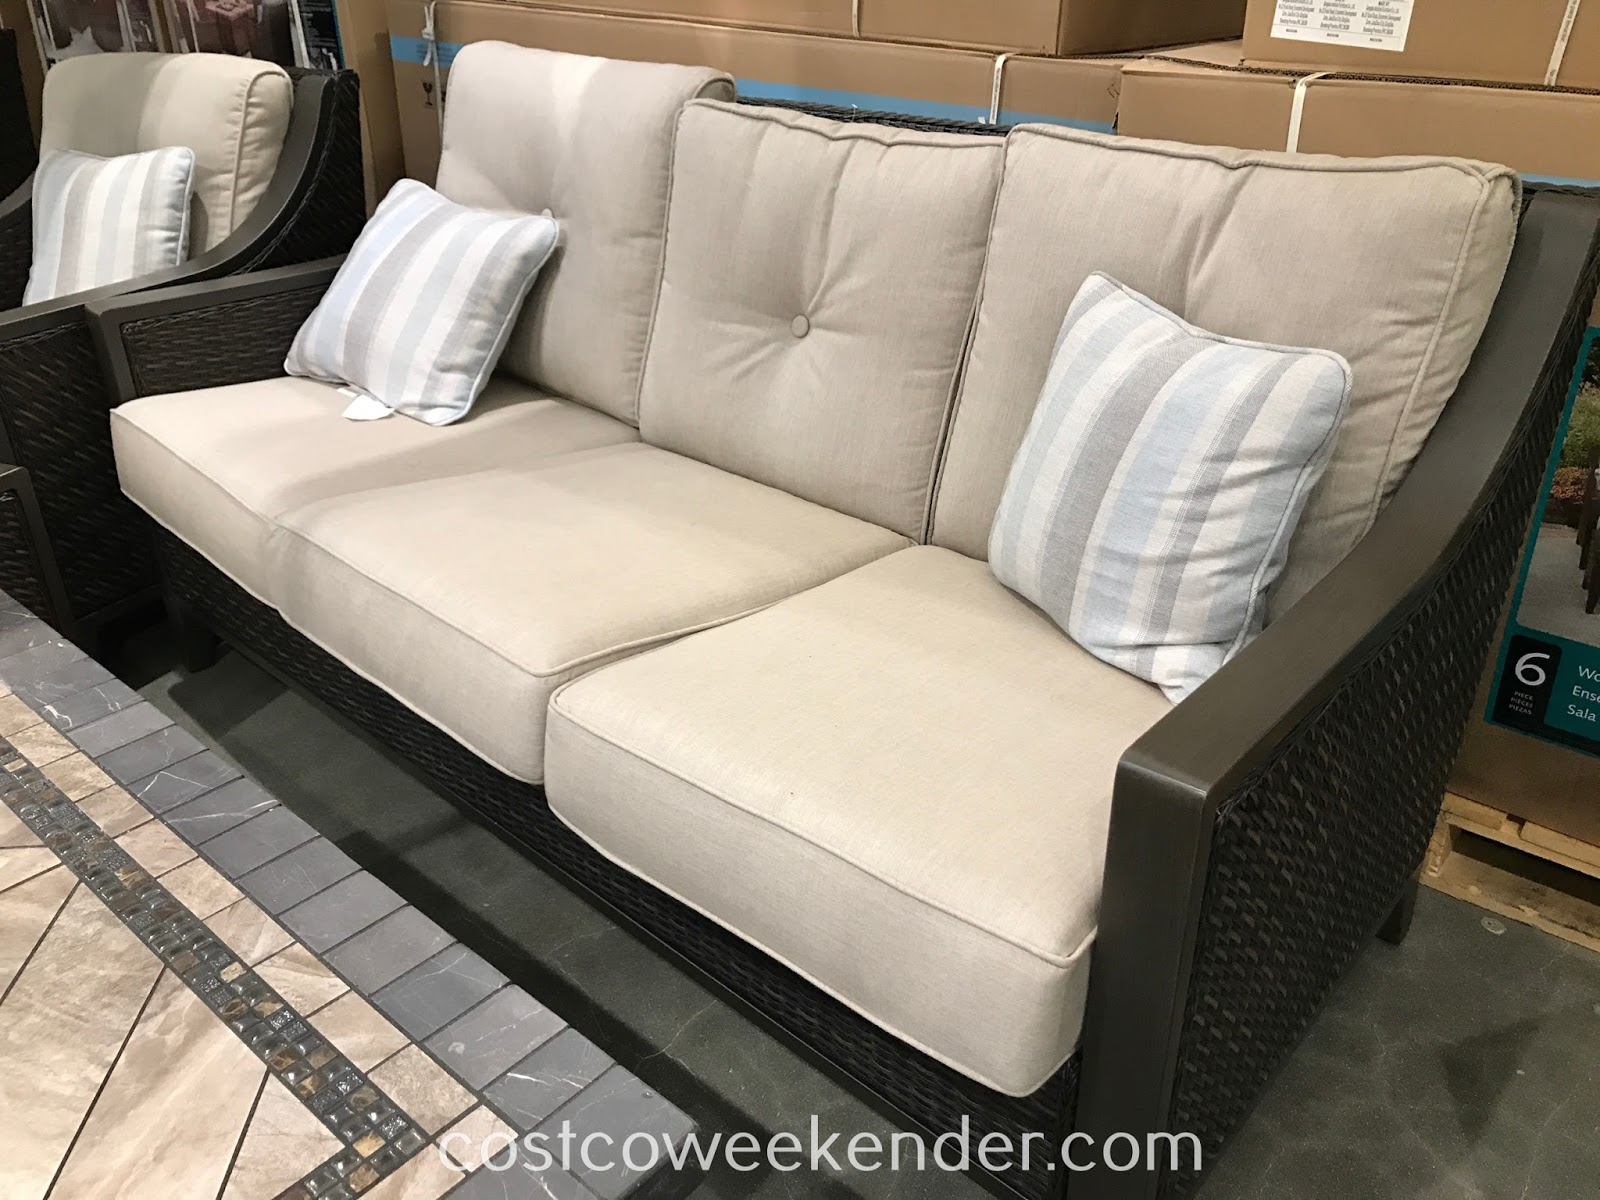 Costco 1500032 - Lounge outside and relax with the Agio 6-piece Woven Deep Seating Set